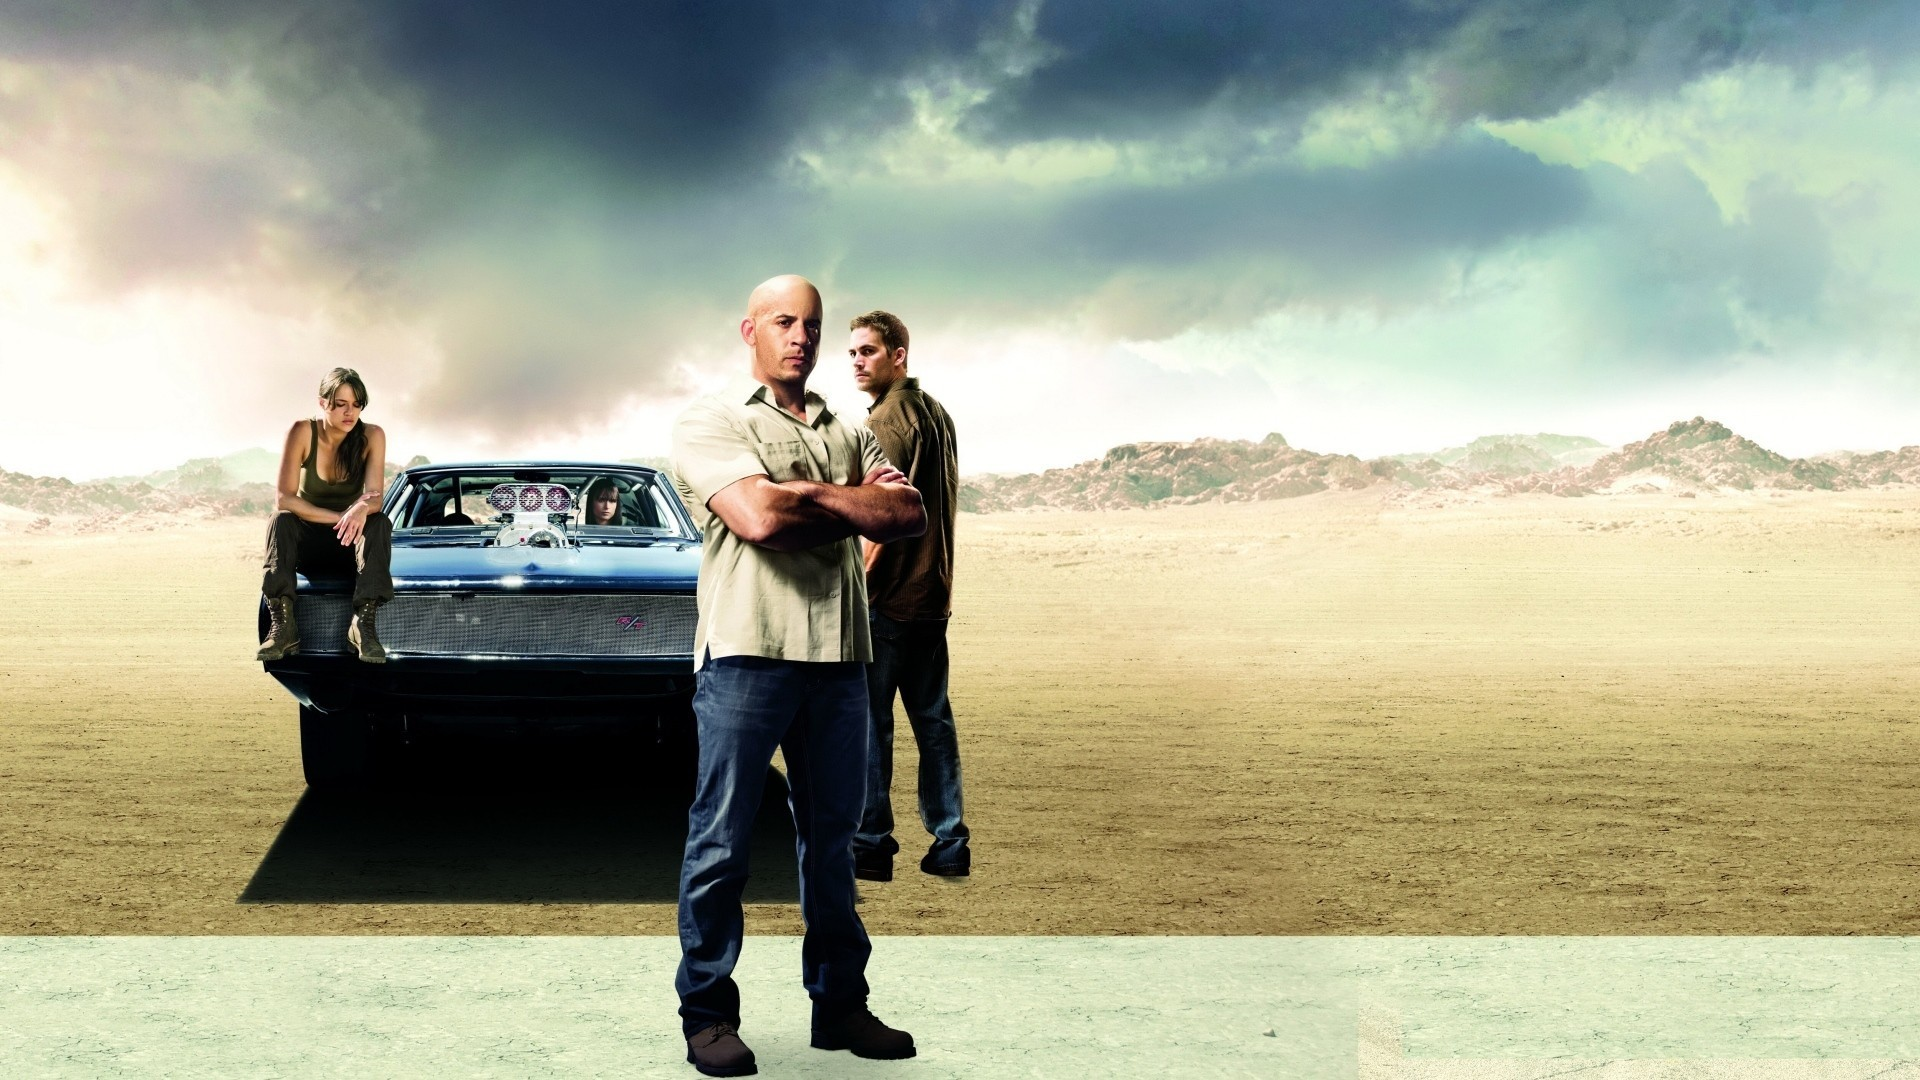 Fast And The Furious 7 Wallpaper: Fast And Furious 7 Wallpaper 9